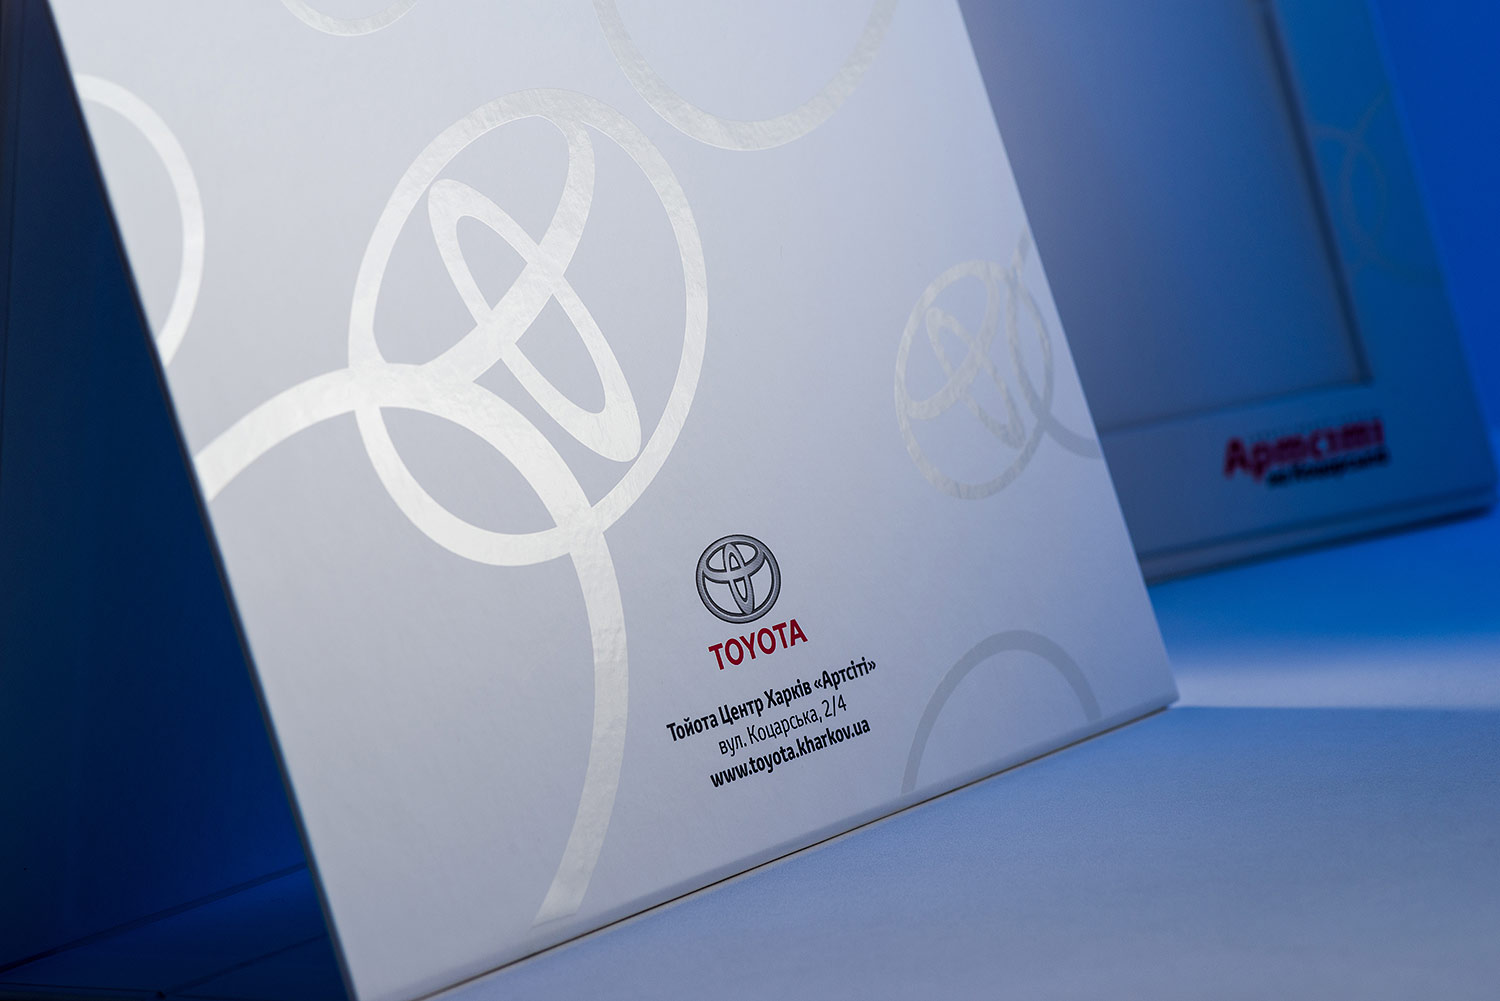 TOYOTA cardboard photo frames with UV varnishing (Toyota Center Kharkiv Artcity)